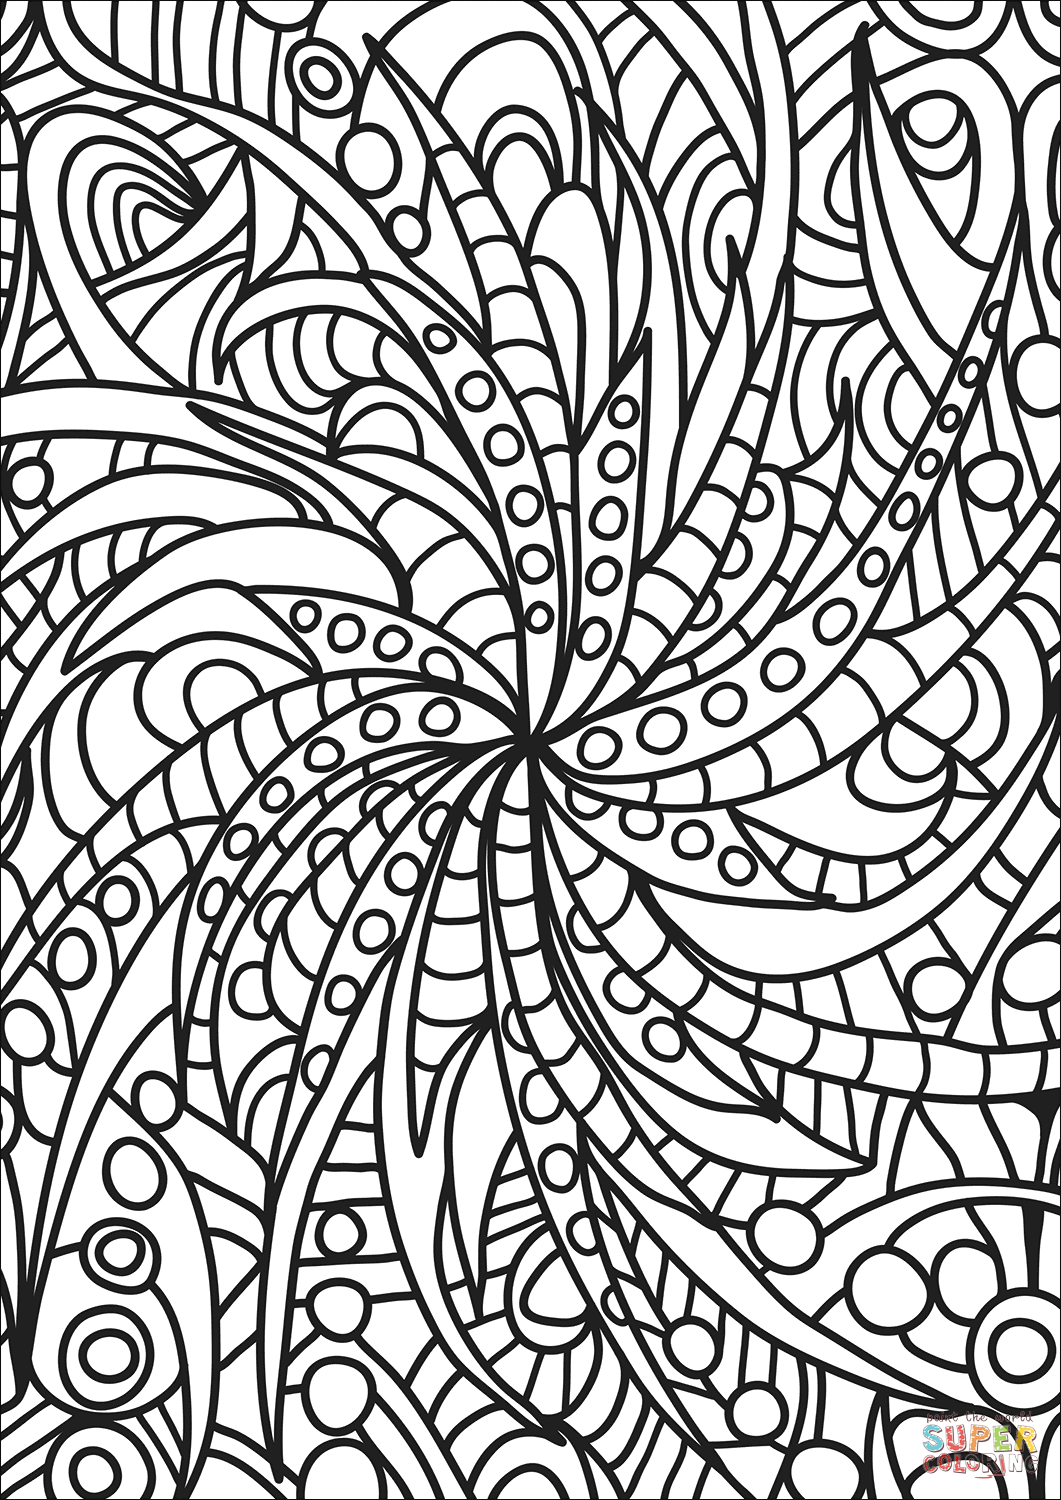 free doodle art to print and color adult doodle art doodling 1 coloring pages printable and print free art color to doodle